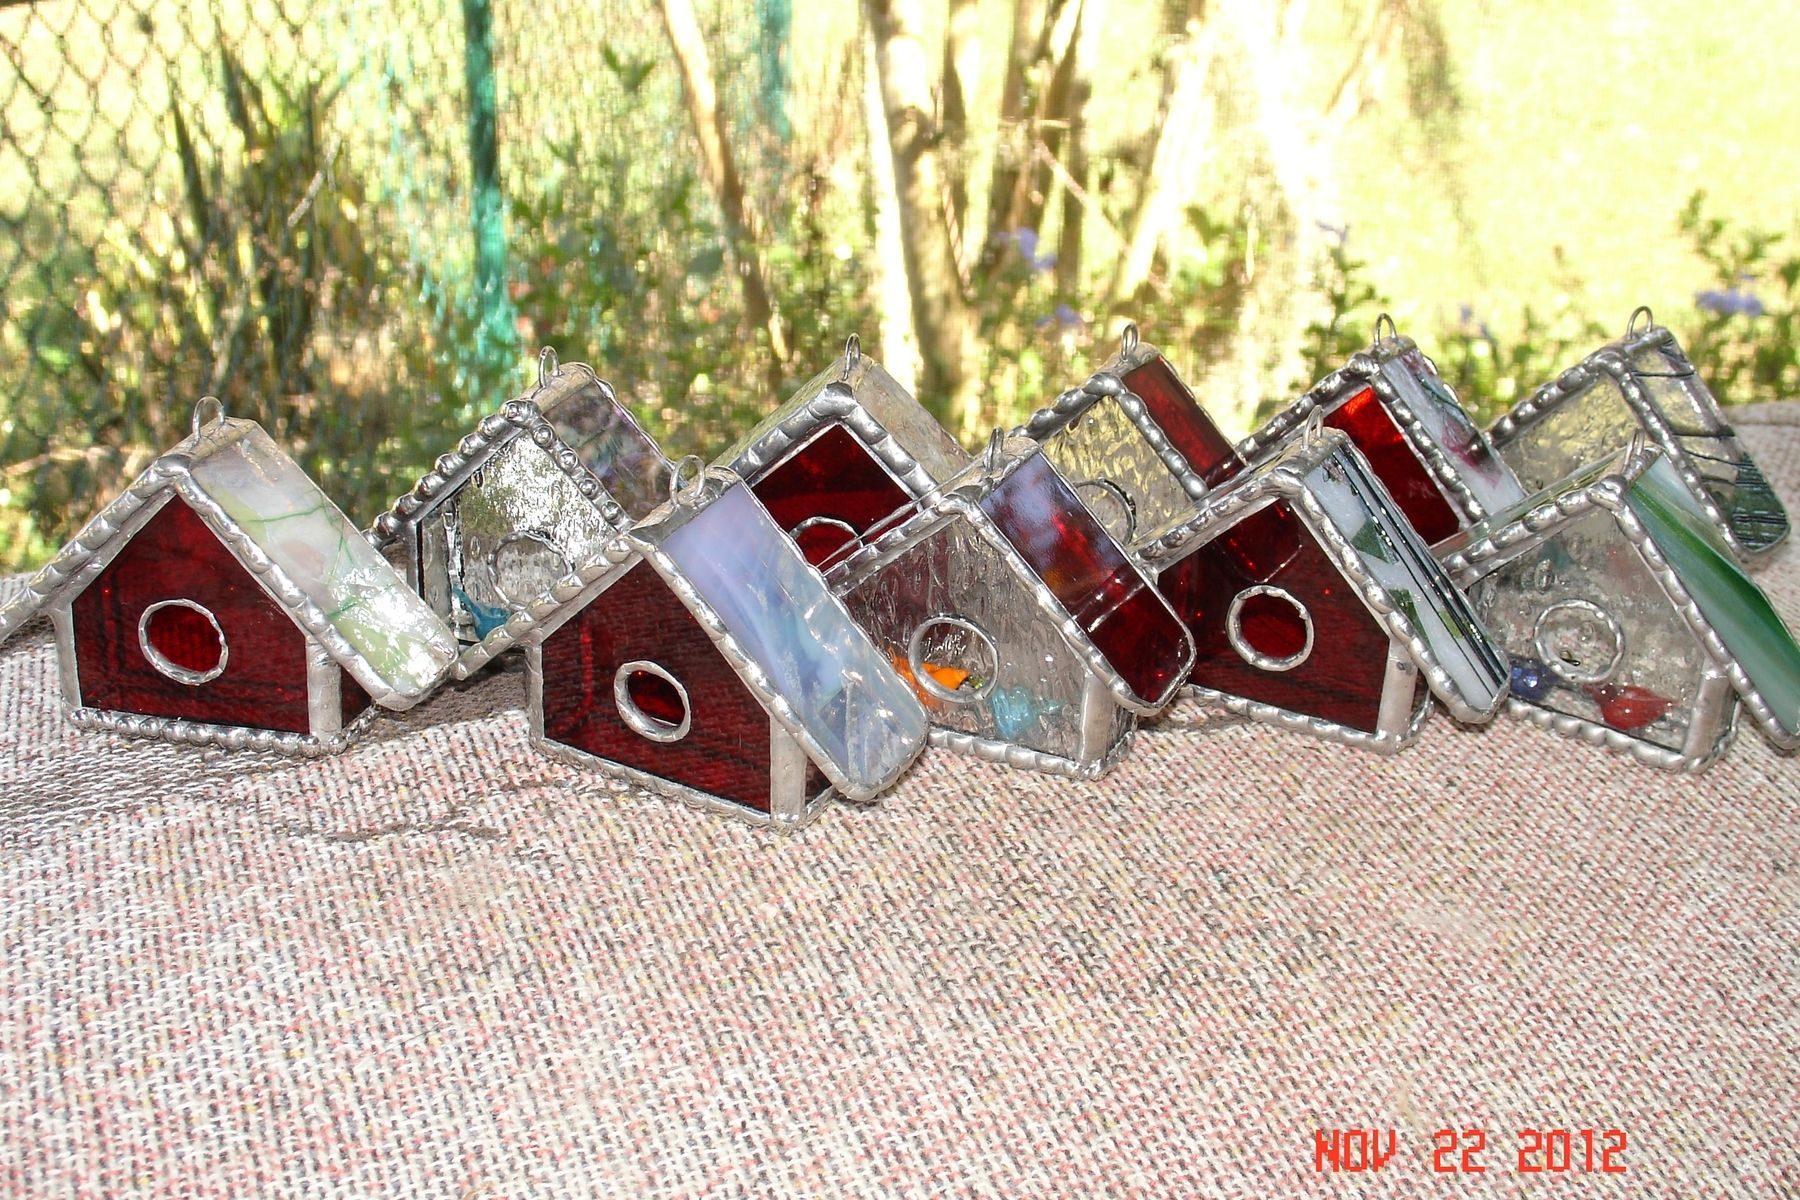 Handmade Stained Glass Bird House Ornaments By Artistic